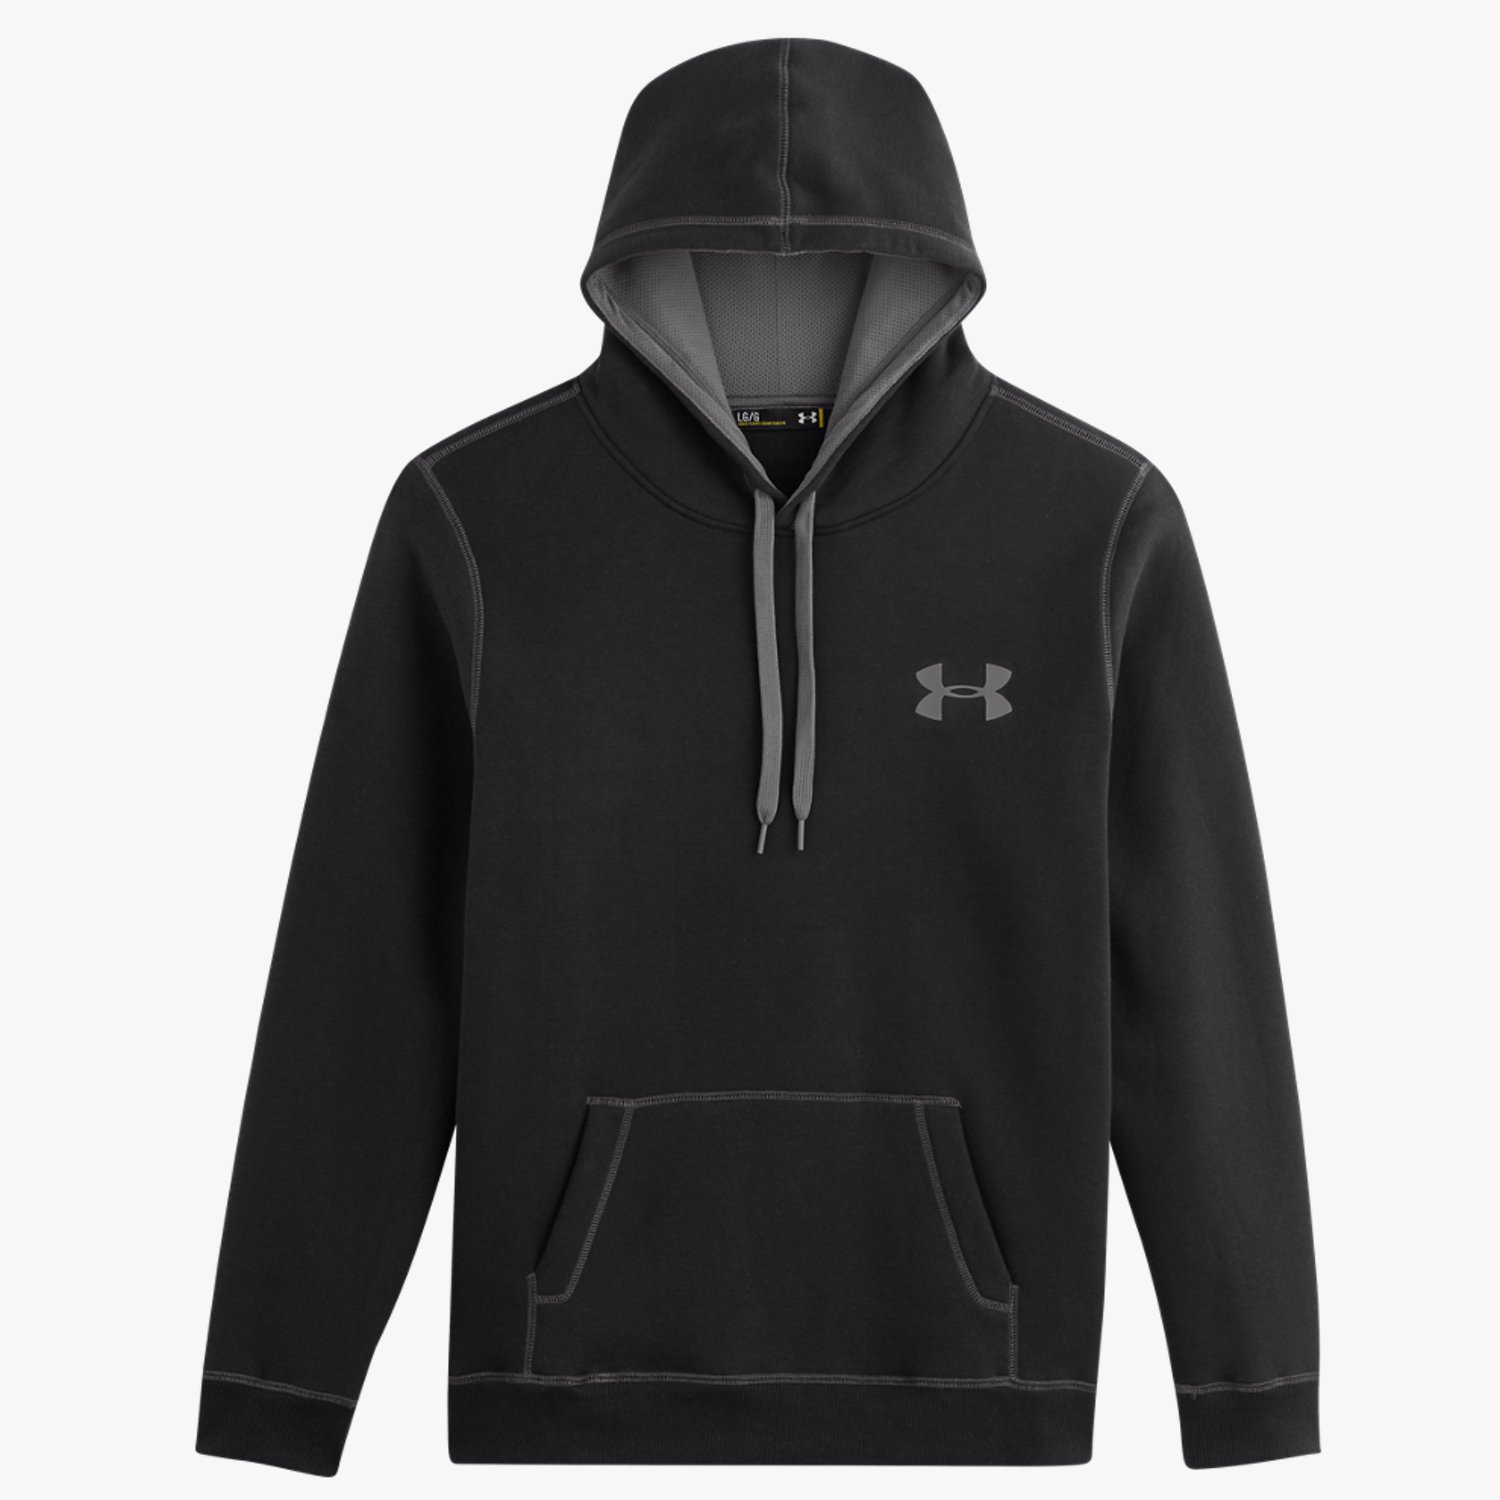 Under Armour UA Storm Rival Hoodie Black/White/White-30